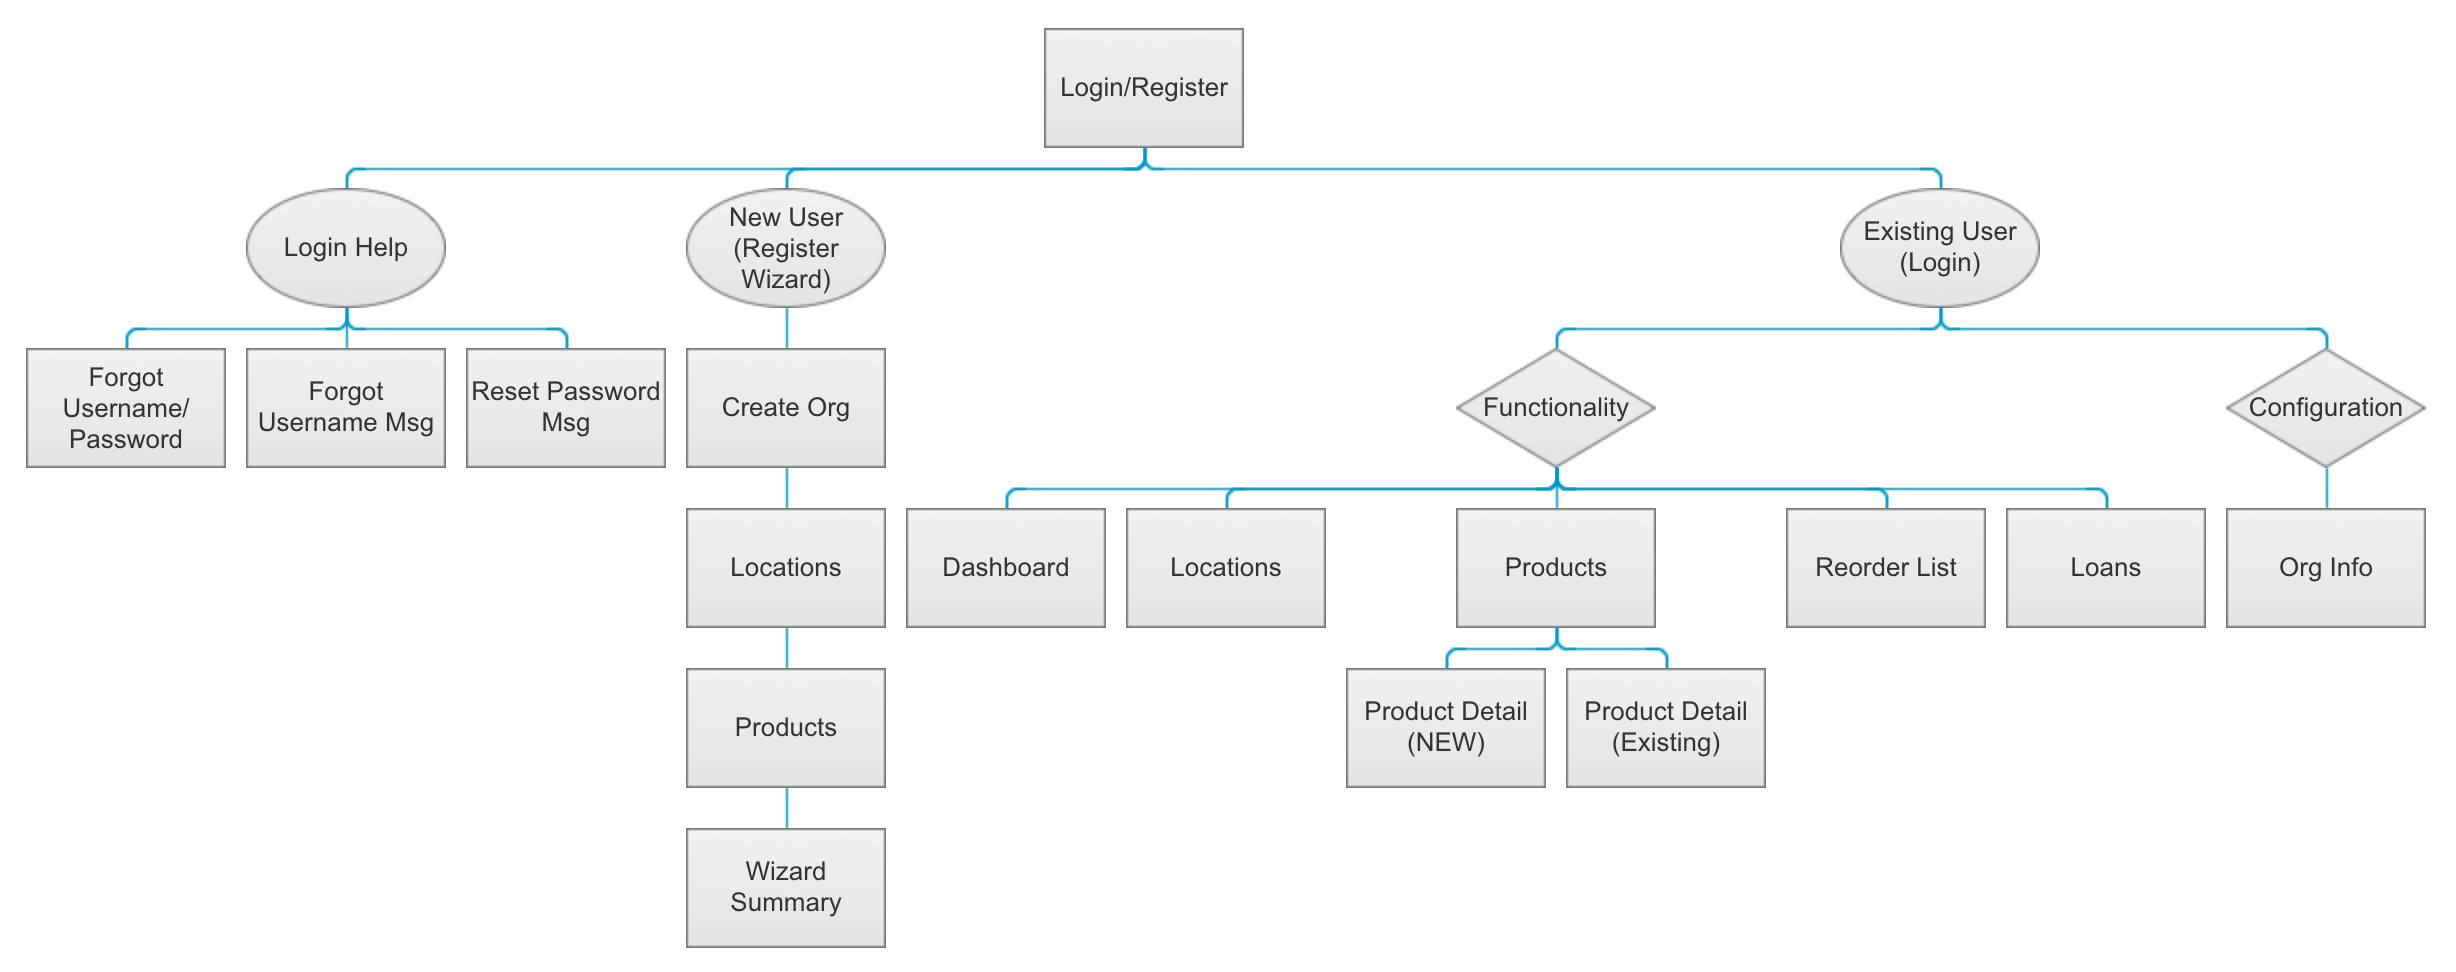 User Flow and Information Architecture